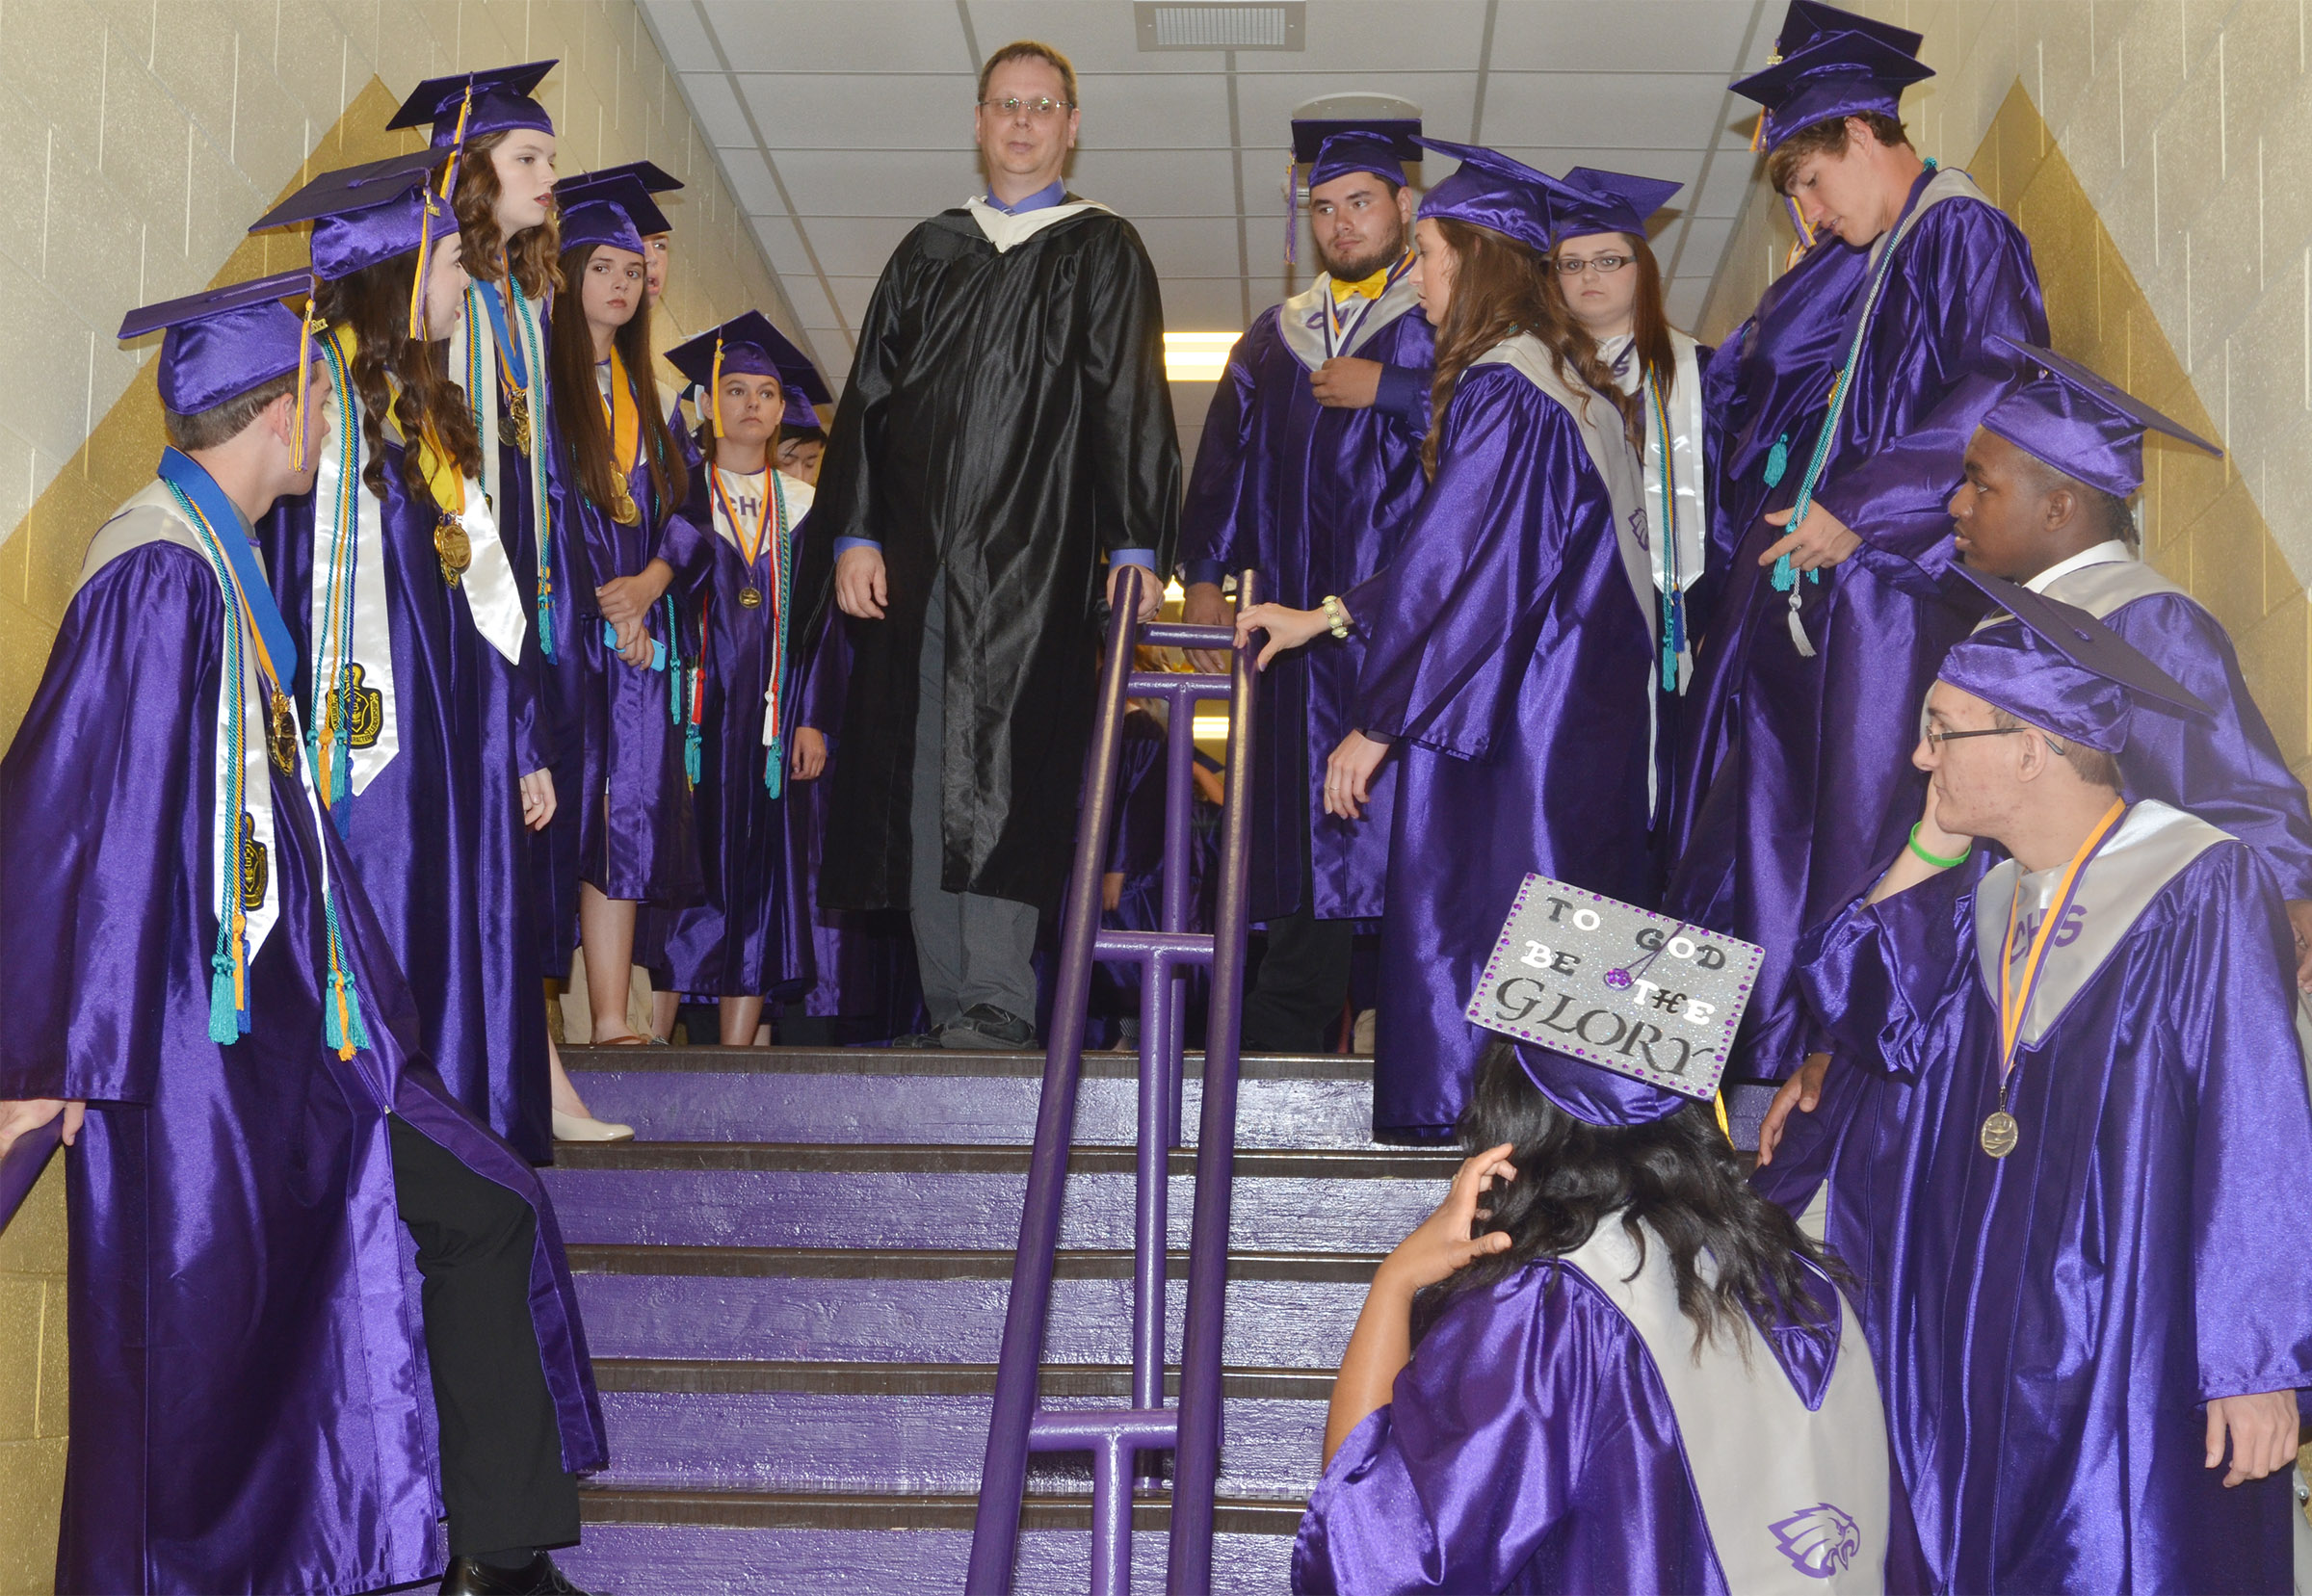 CHS Guidance Counselor Richard Dooley waits with the Class of 2017 for their graduation ceremony to begin.